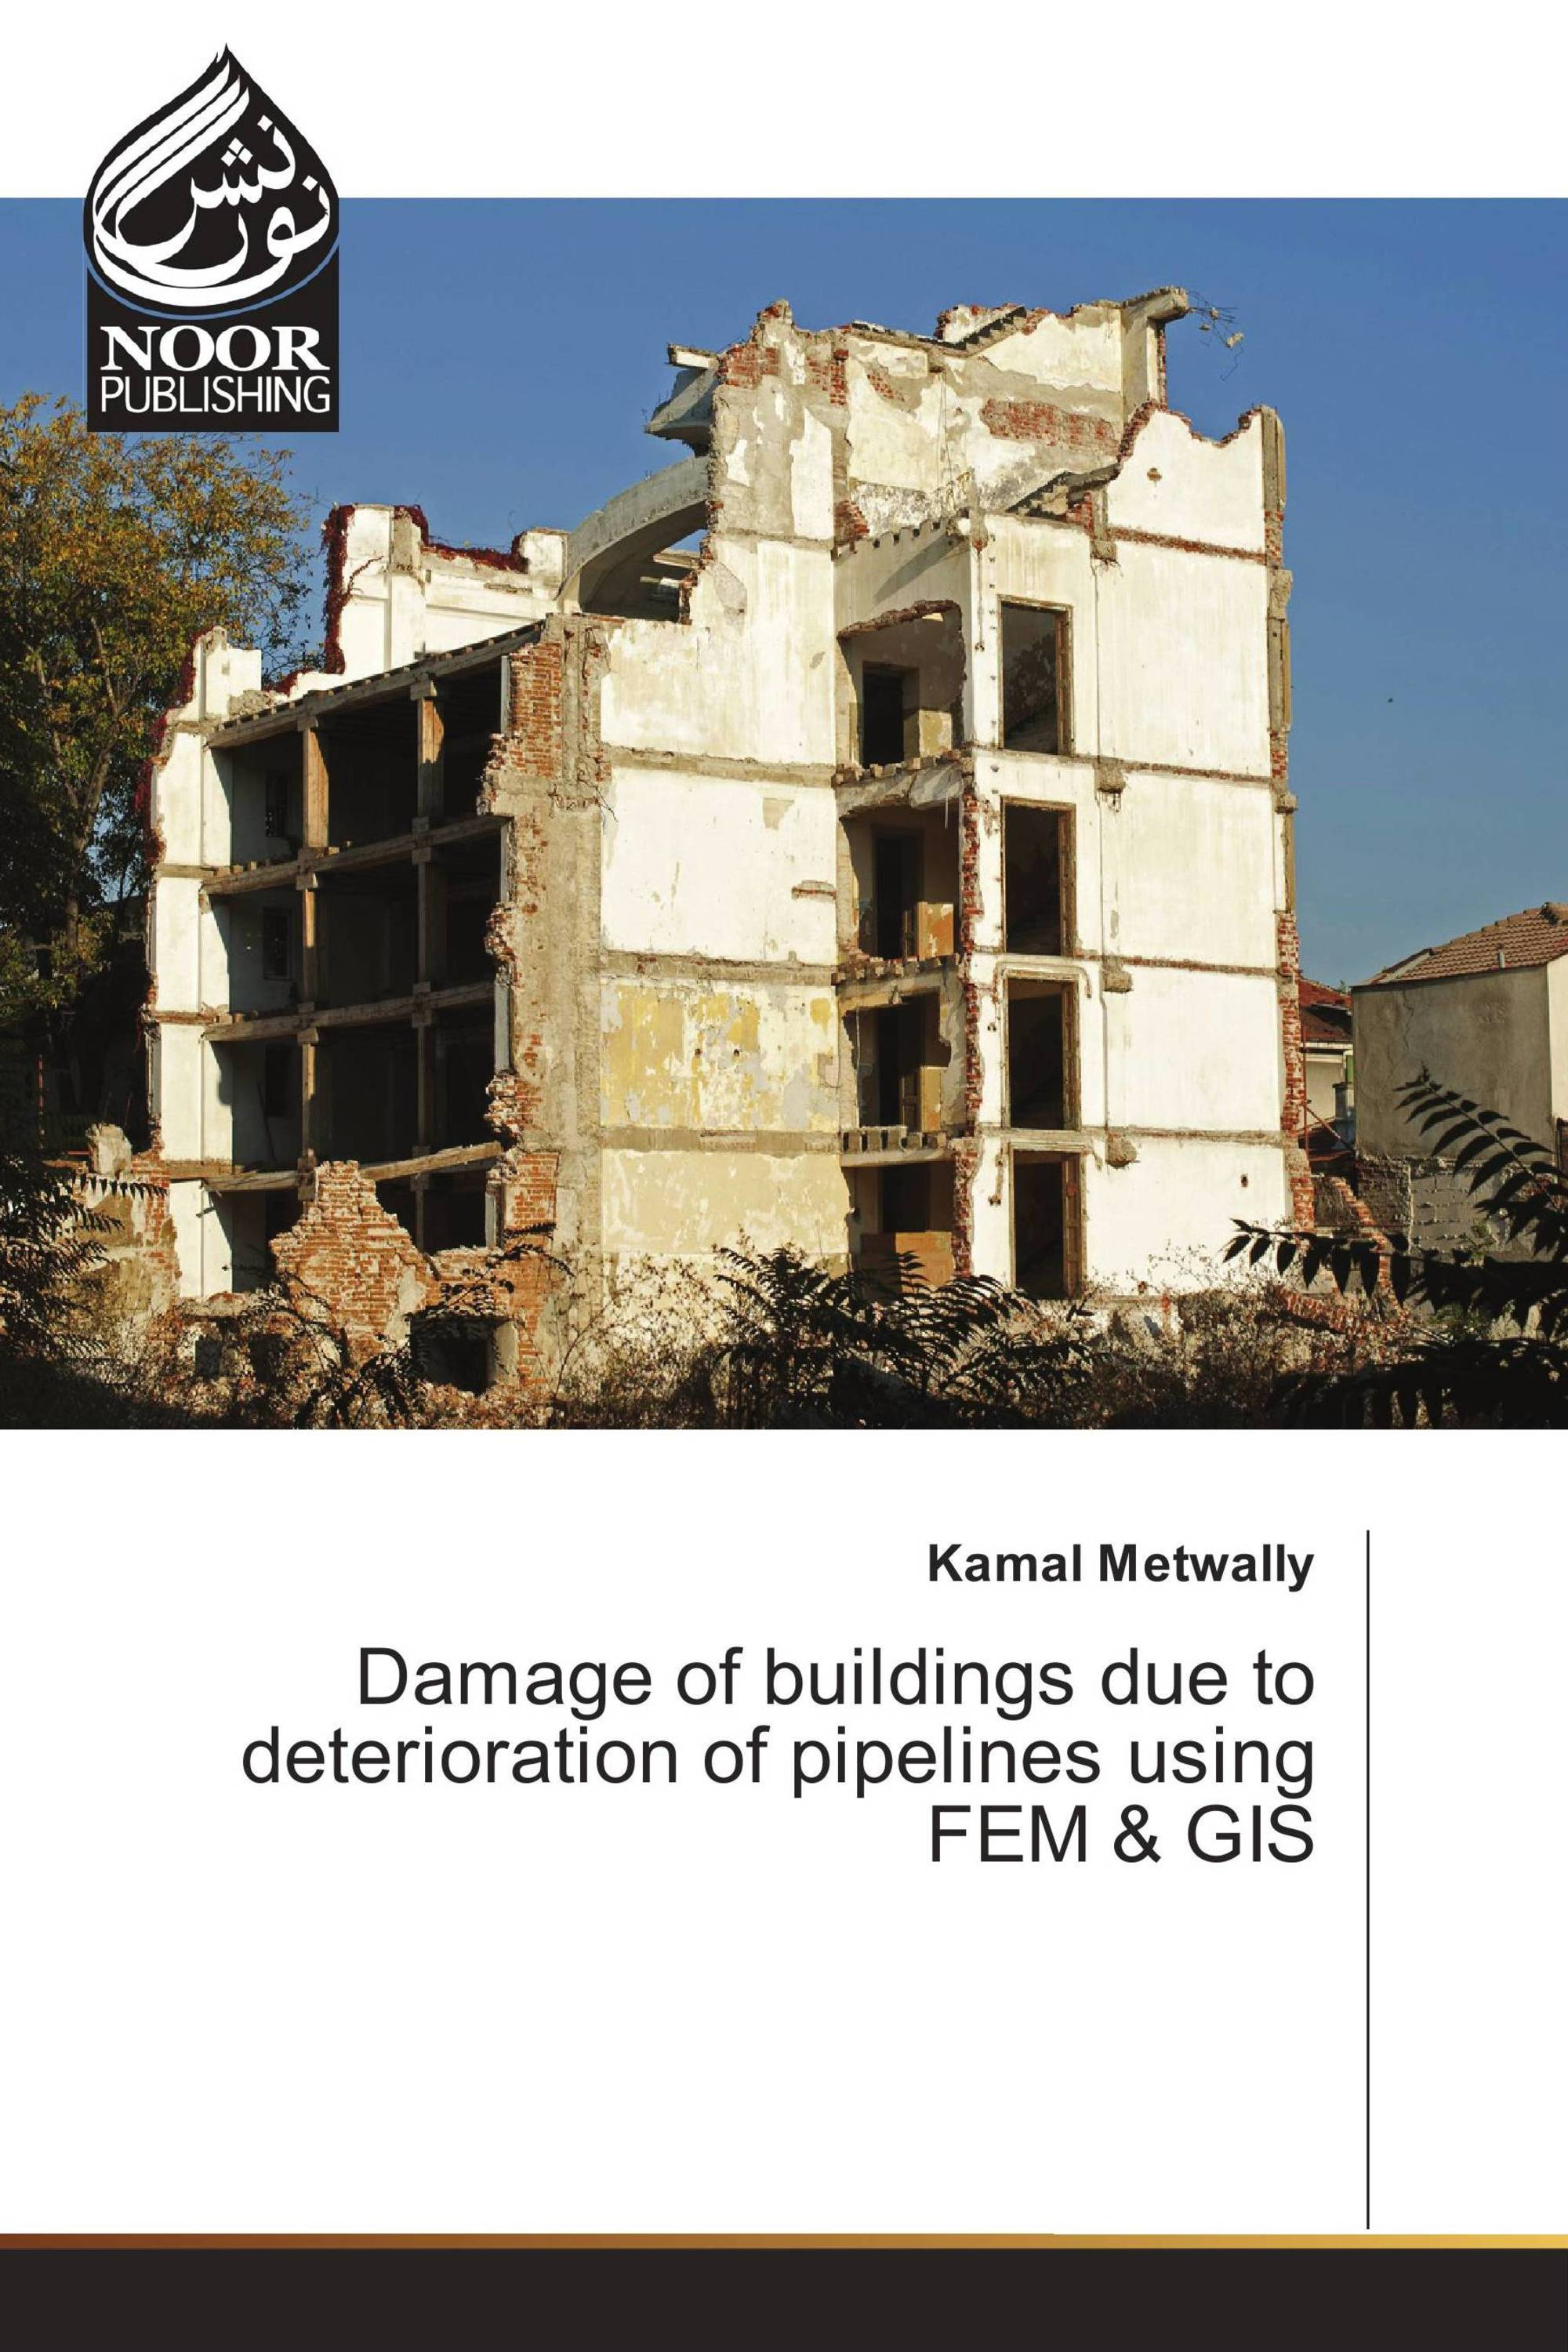 Damage of buildings due to deterioration of pipelines using FEM & GIS